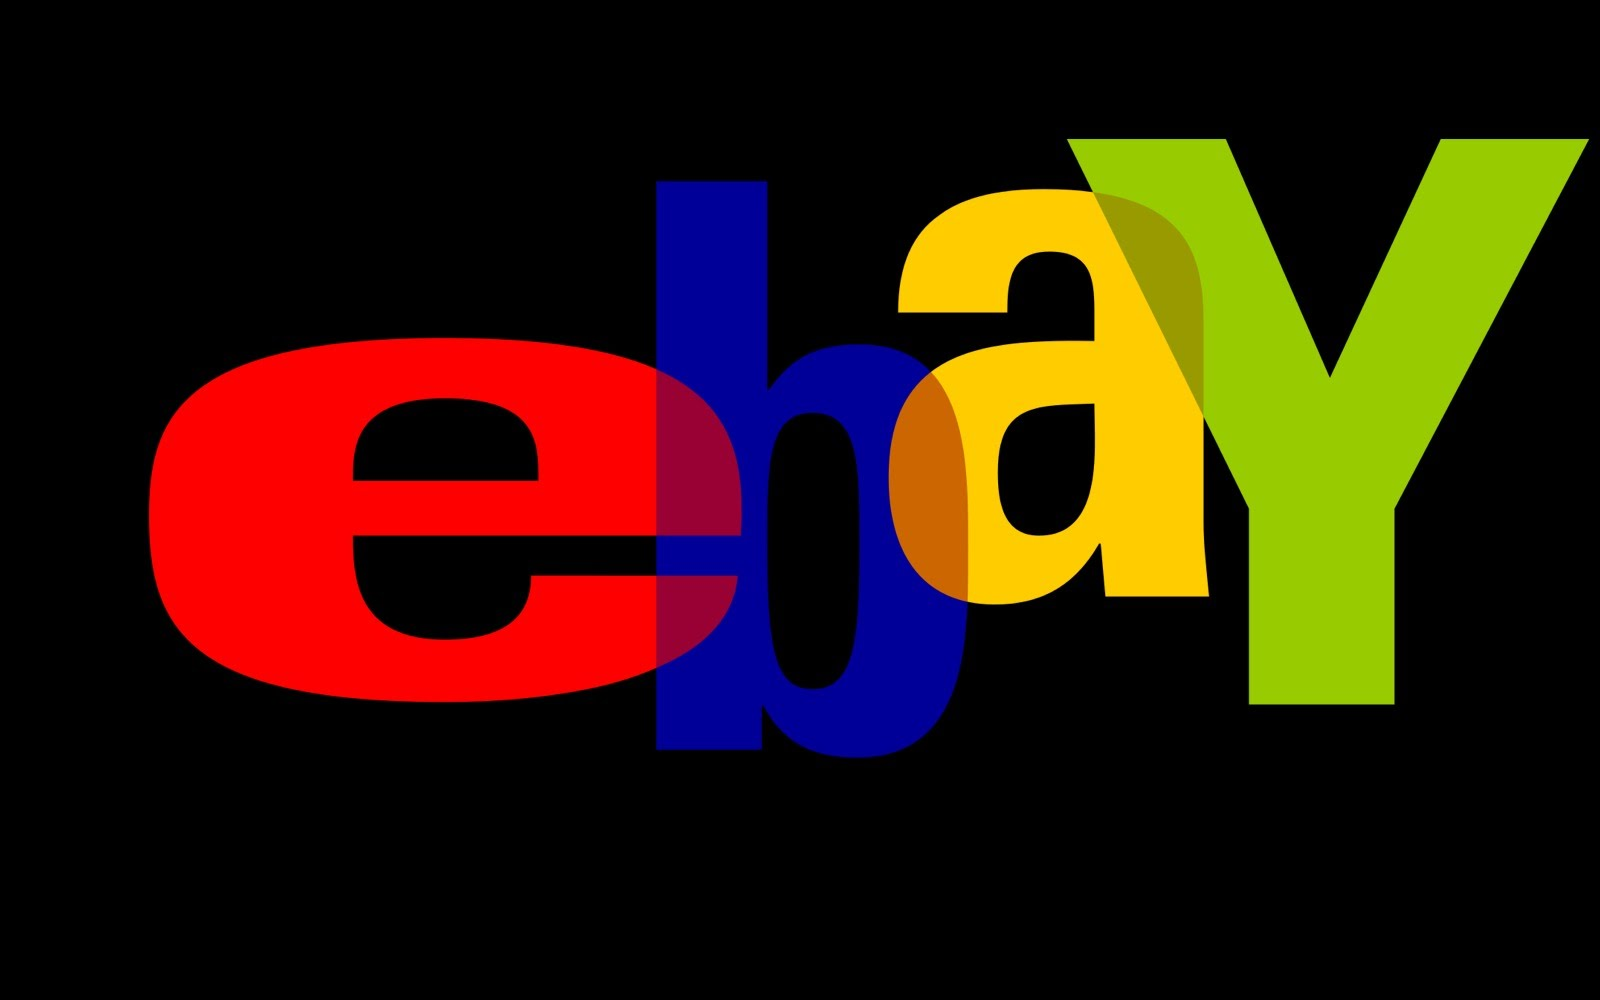 Ebay Gives You A 15 Discount On The Entire Website As Part Of Its Star Wars Day Coupon Code Inside